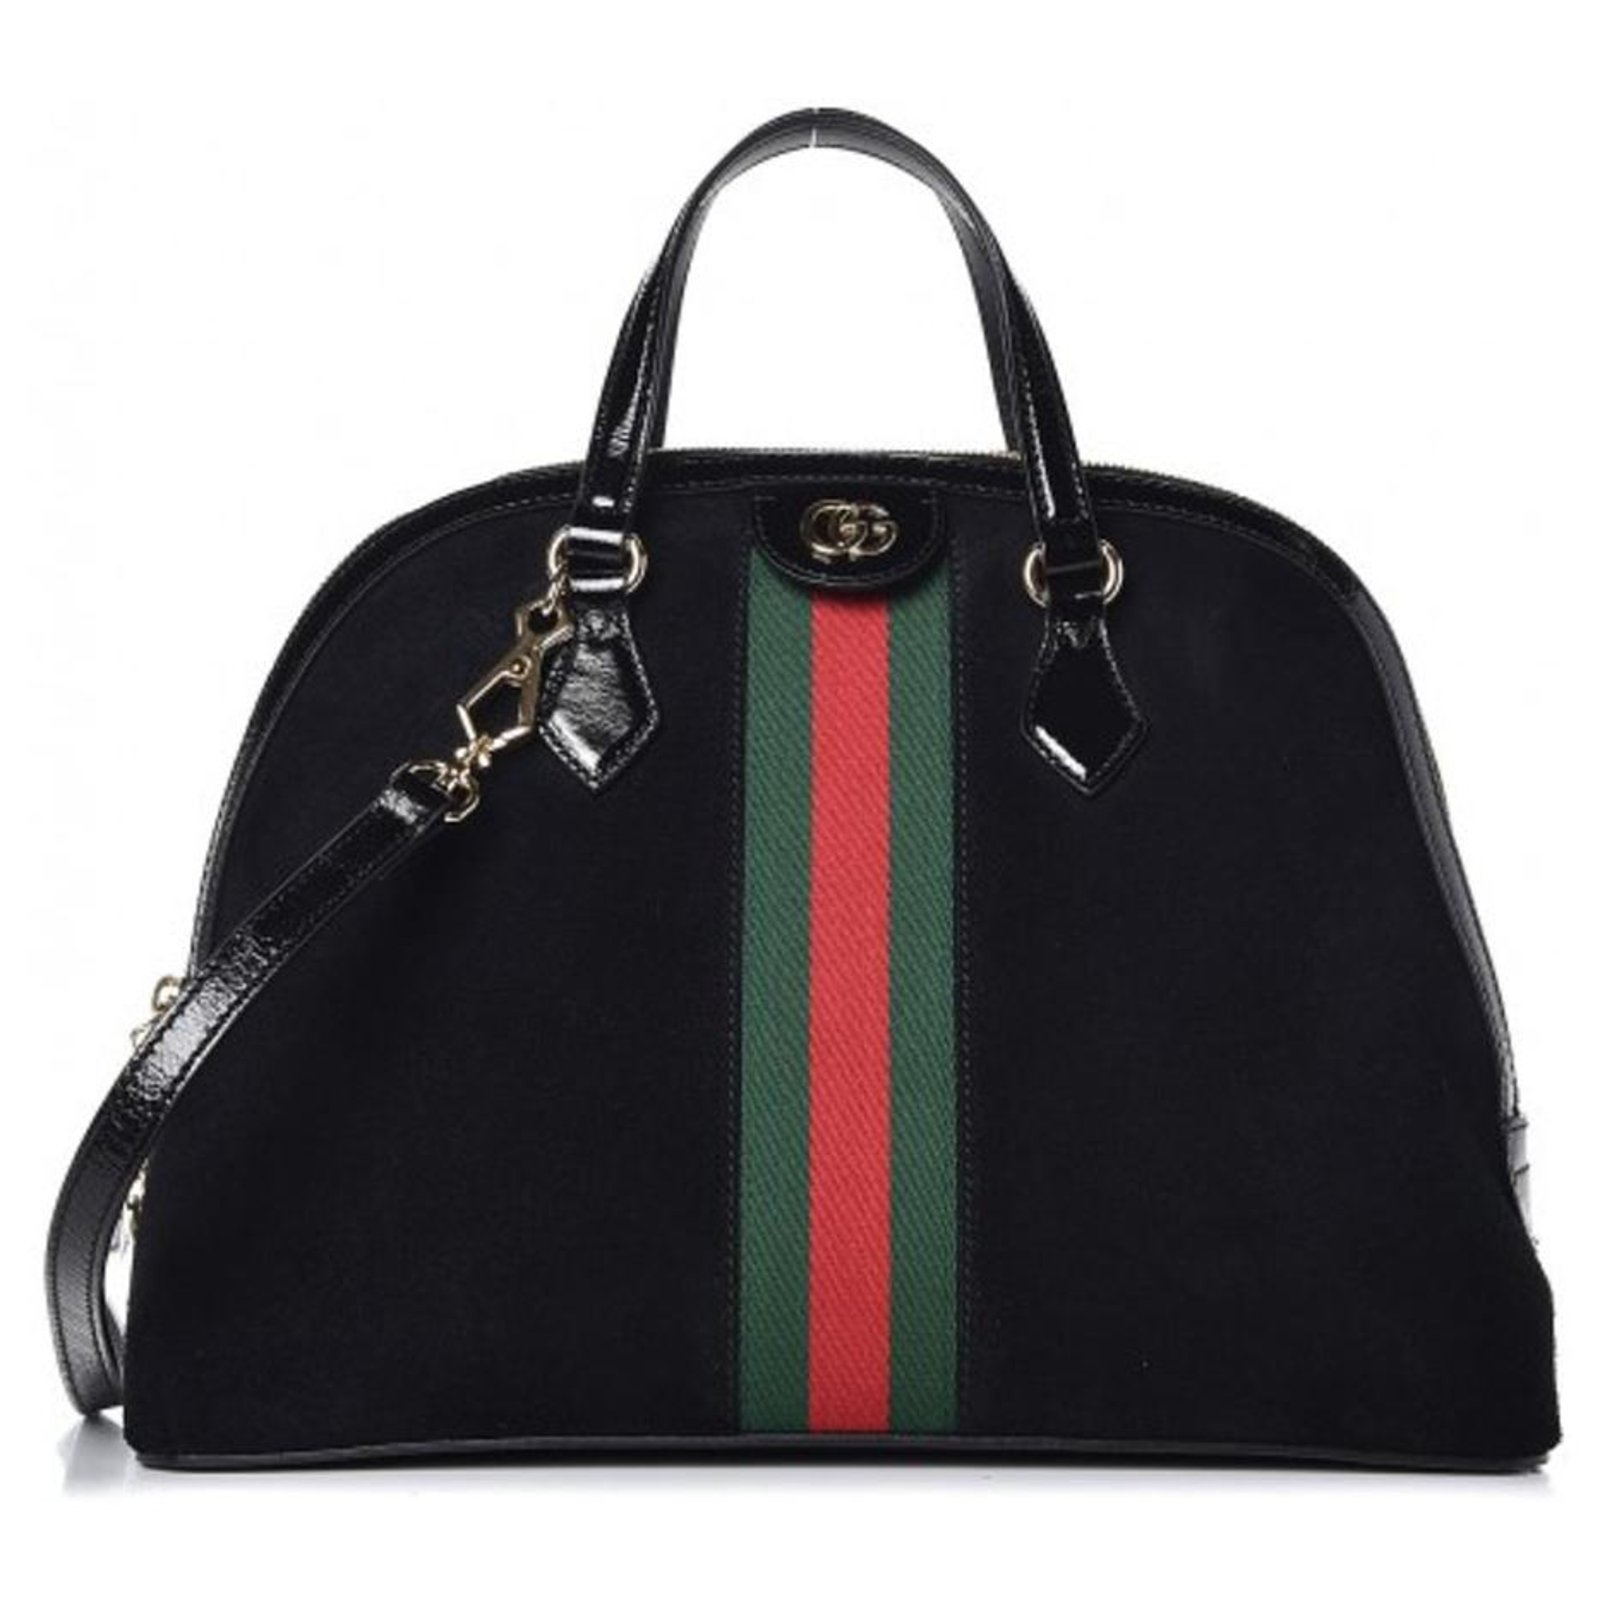 Gucci Ophidia Top Handle Bag